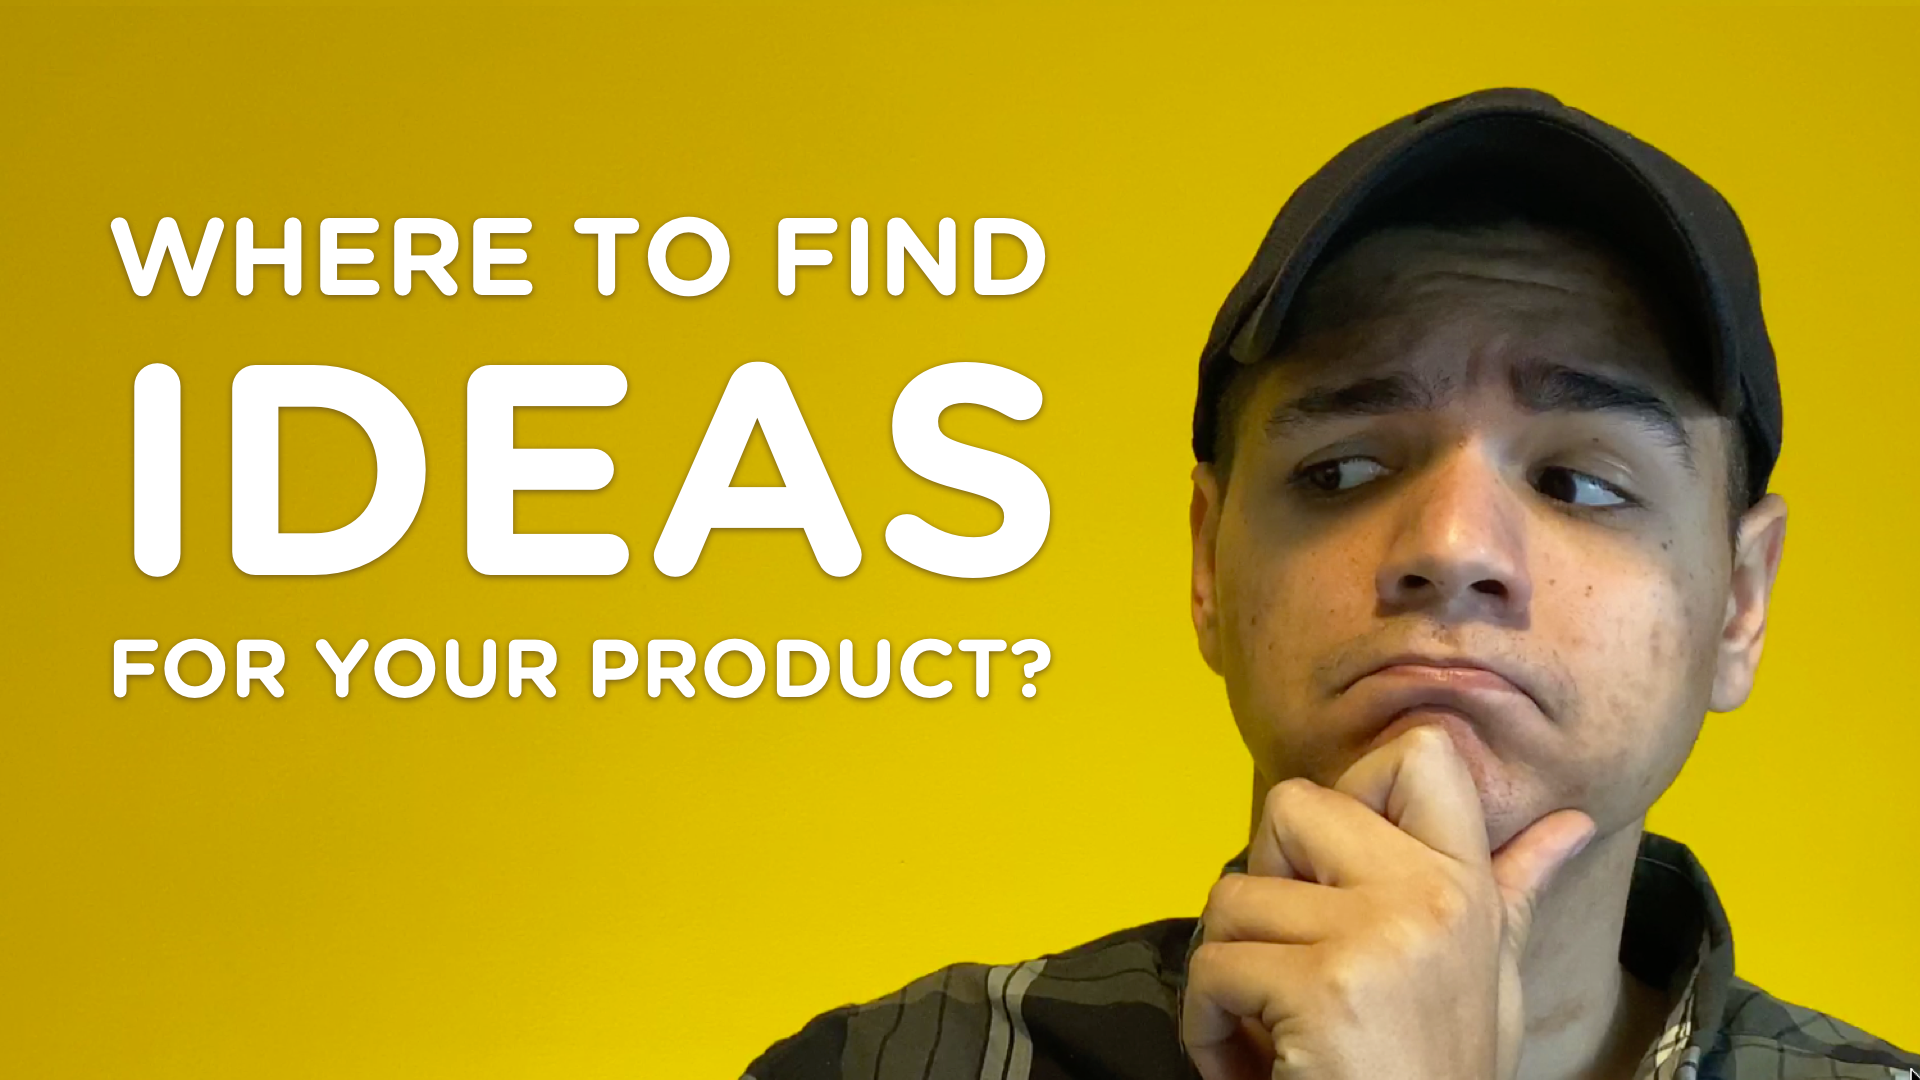 Where to Find Ideas for Your Product